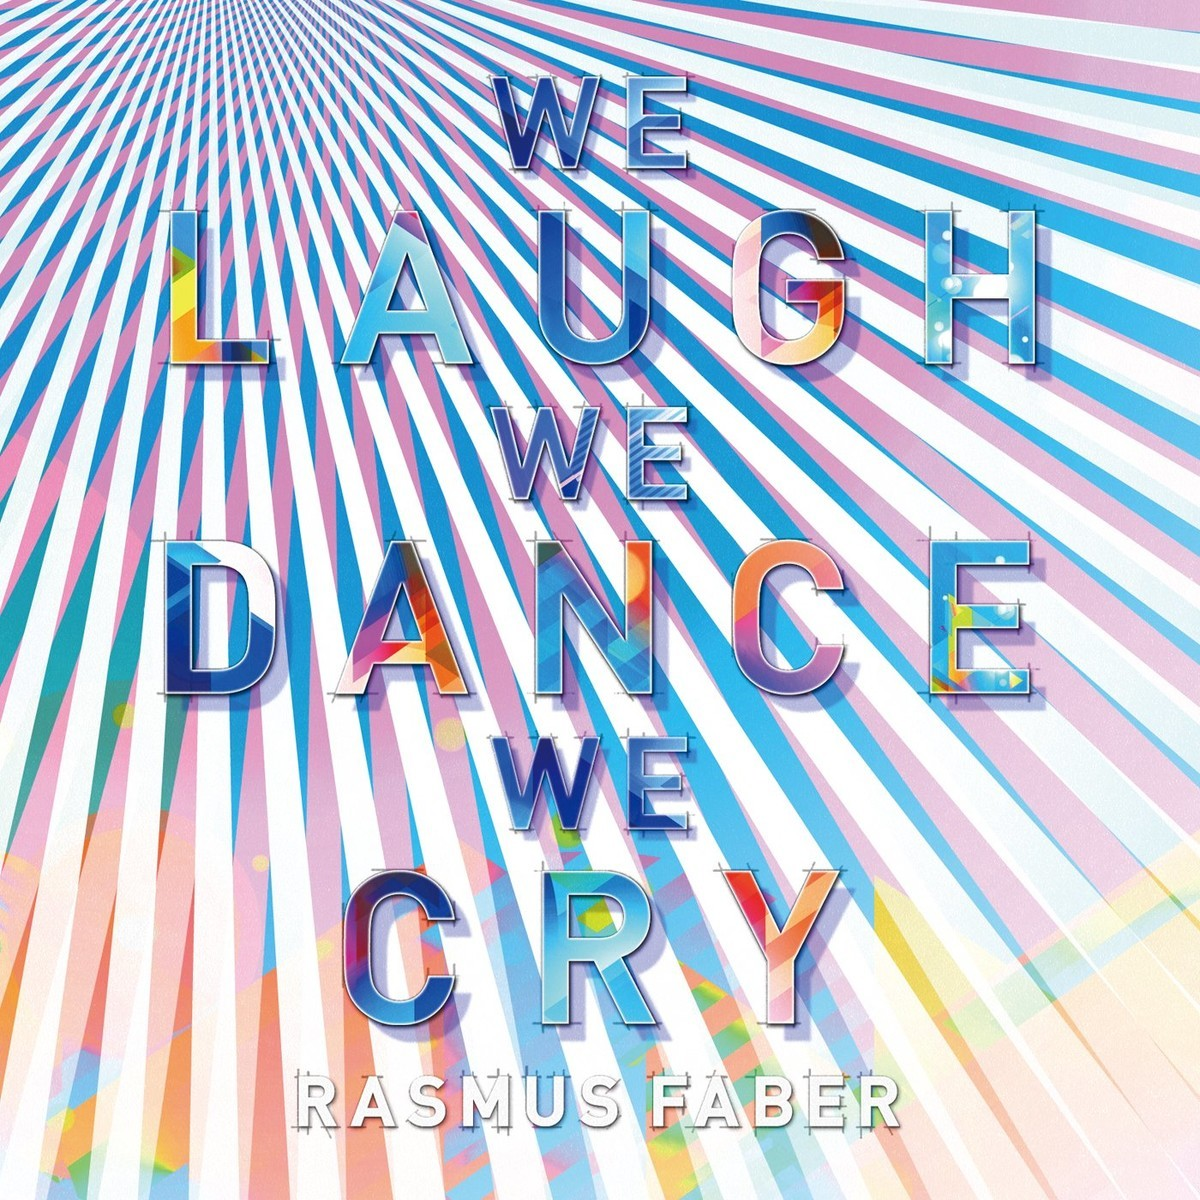 We Laugh We Dance We Cry